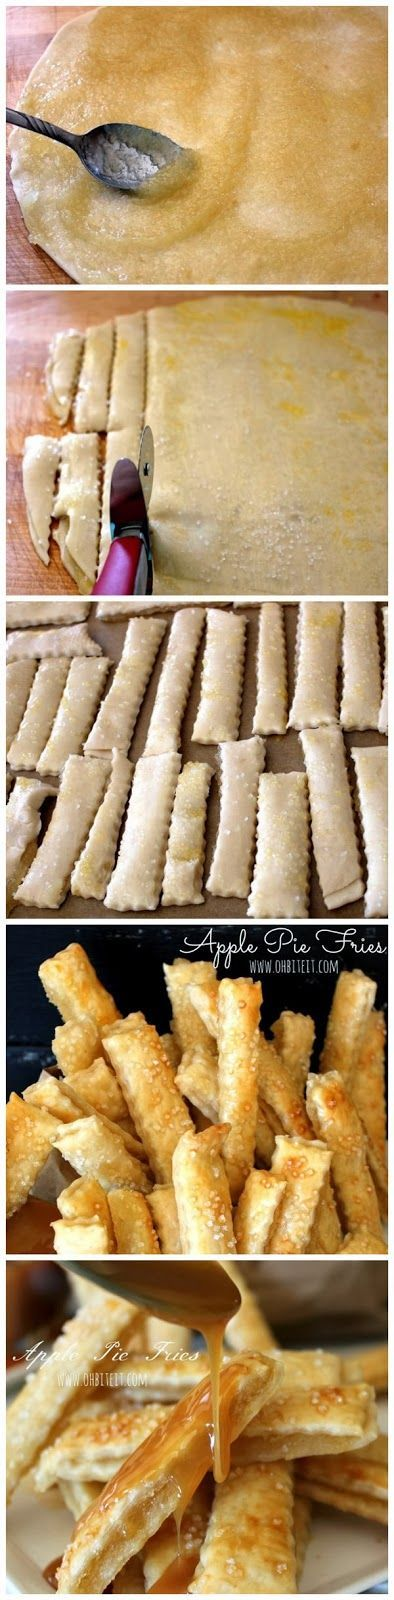 Allrecipecenter: Apple Pie Fries